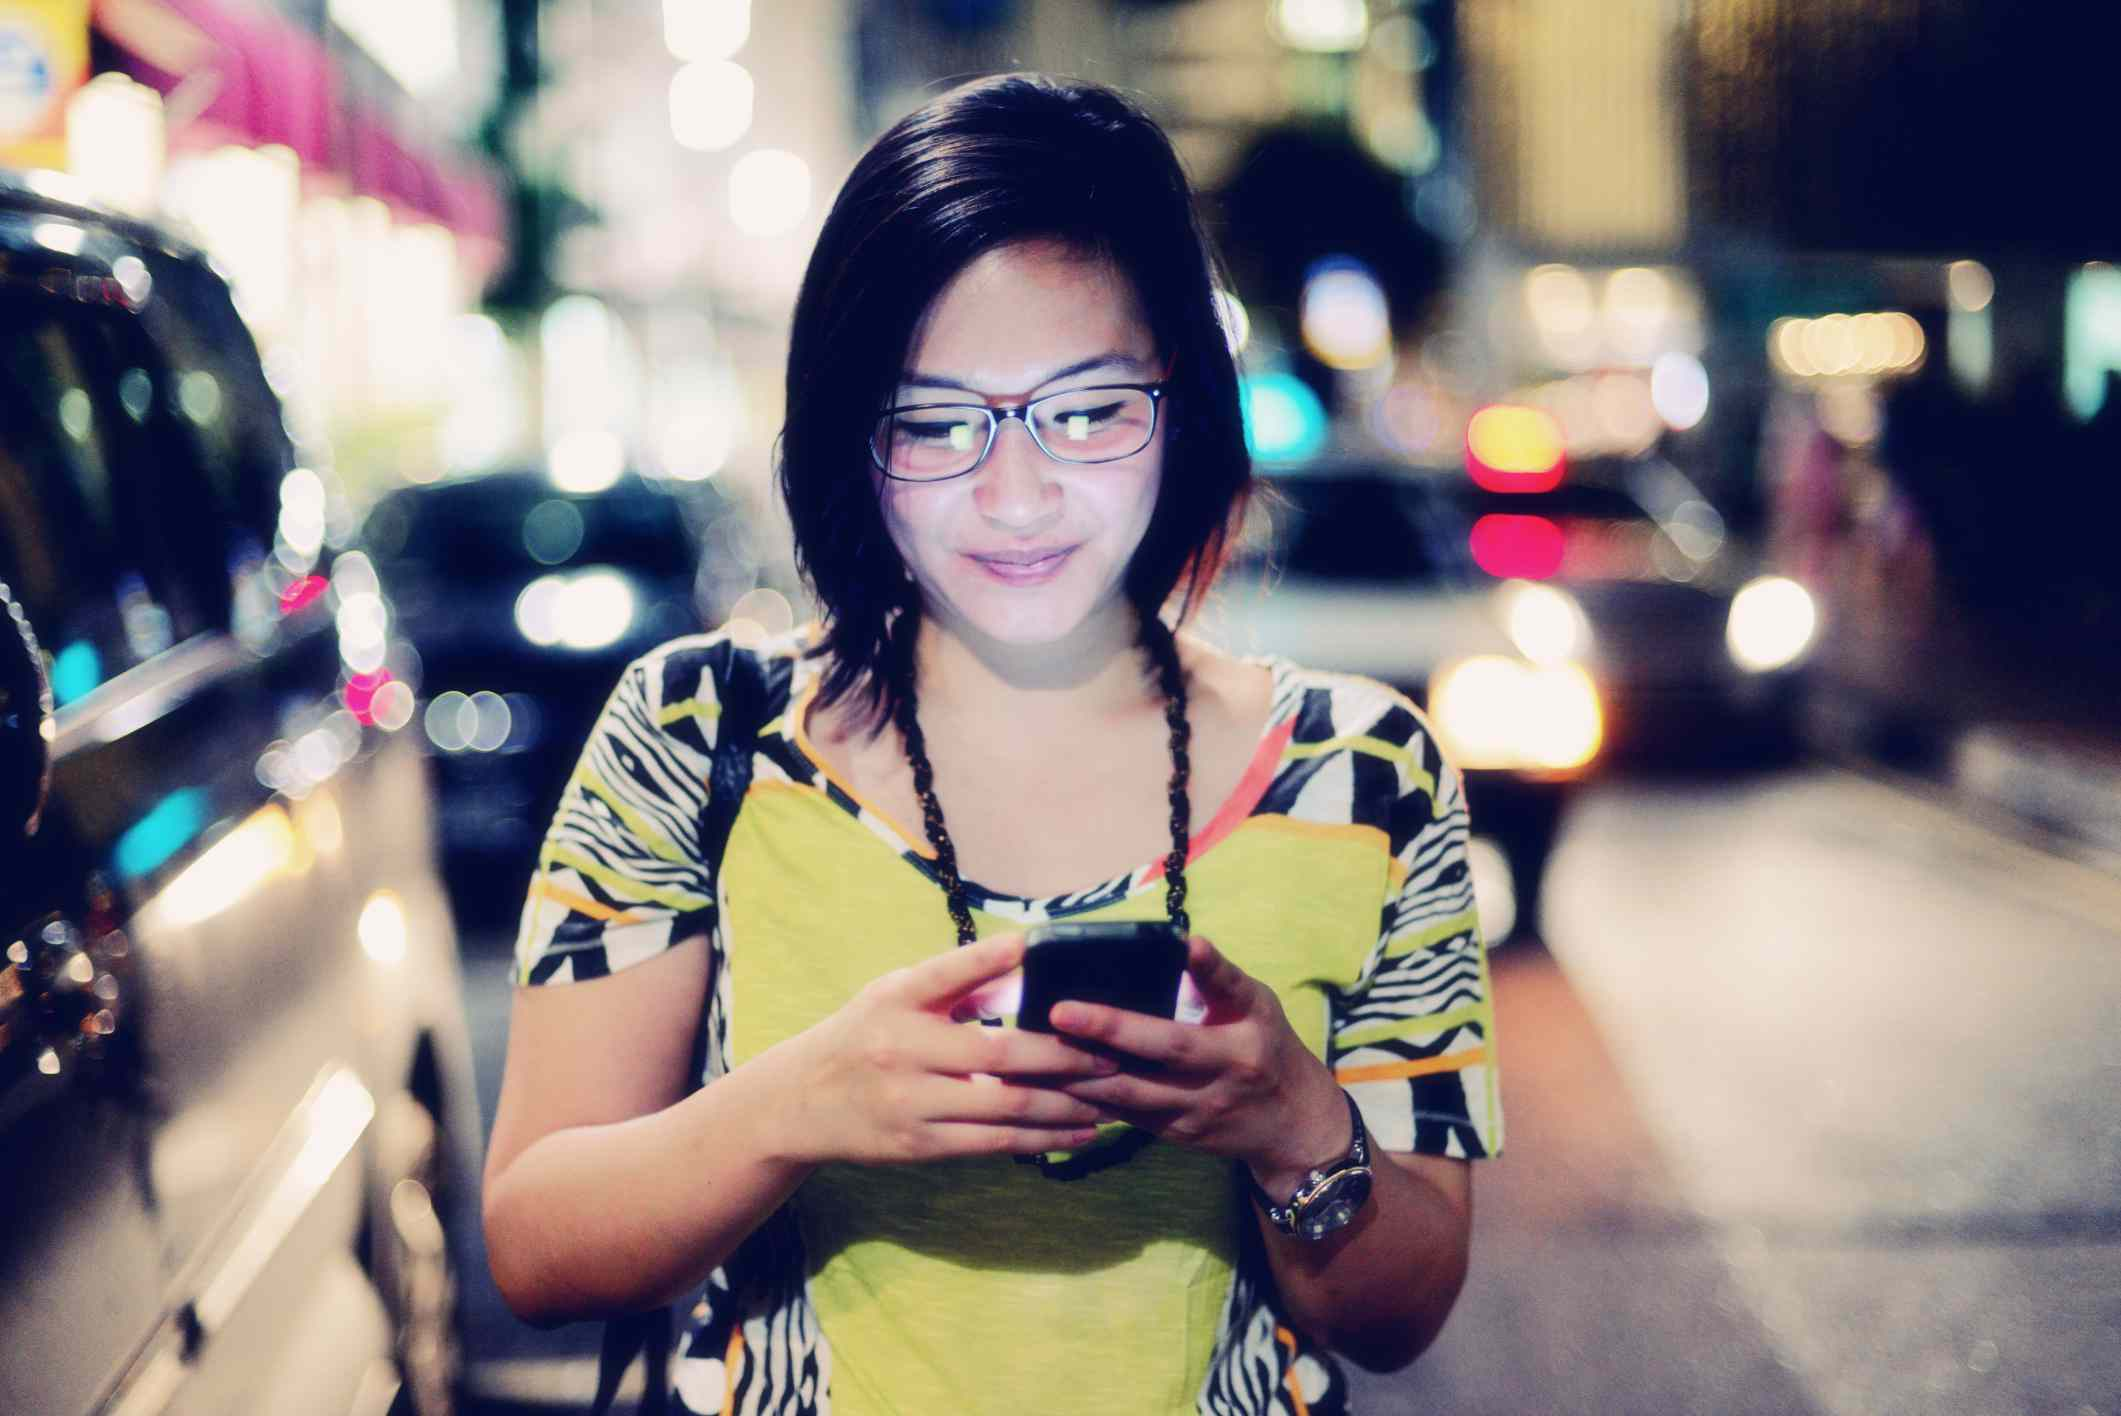 Pedestrian types on a smartphone on a city street at night